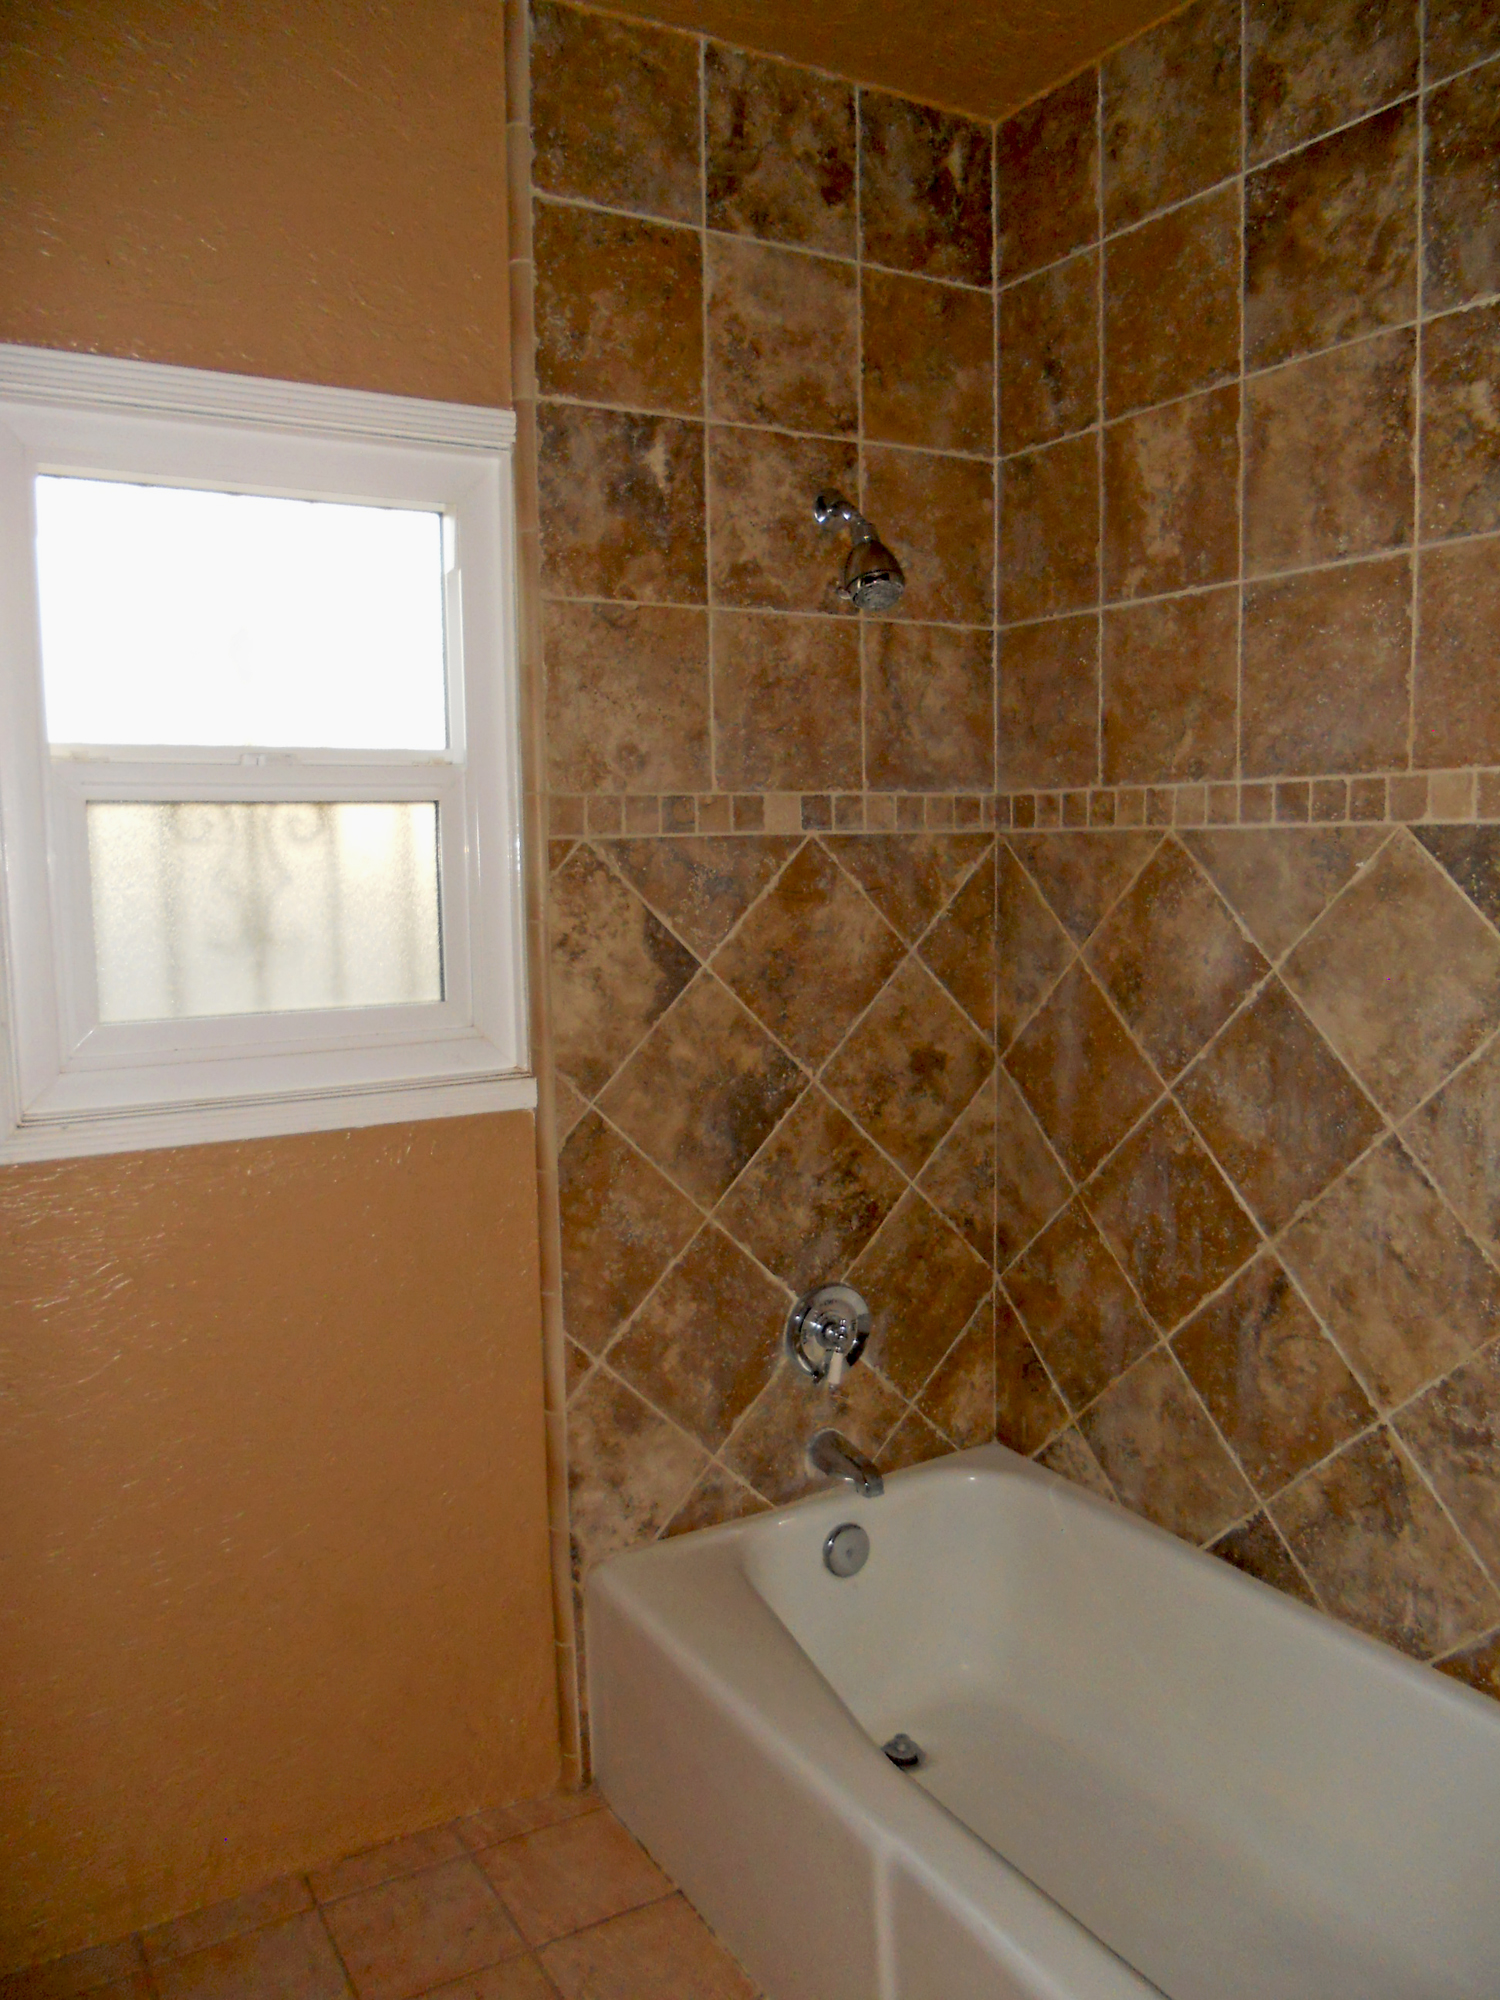 Gorgeous re-tiled tub/shower enclosure in the remodeled bathroom.